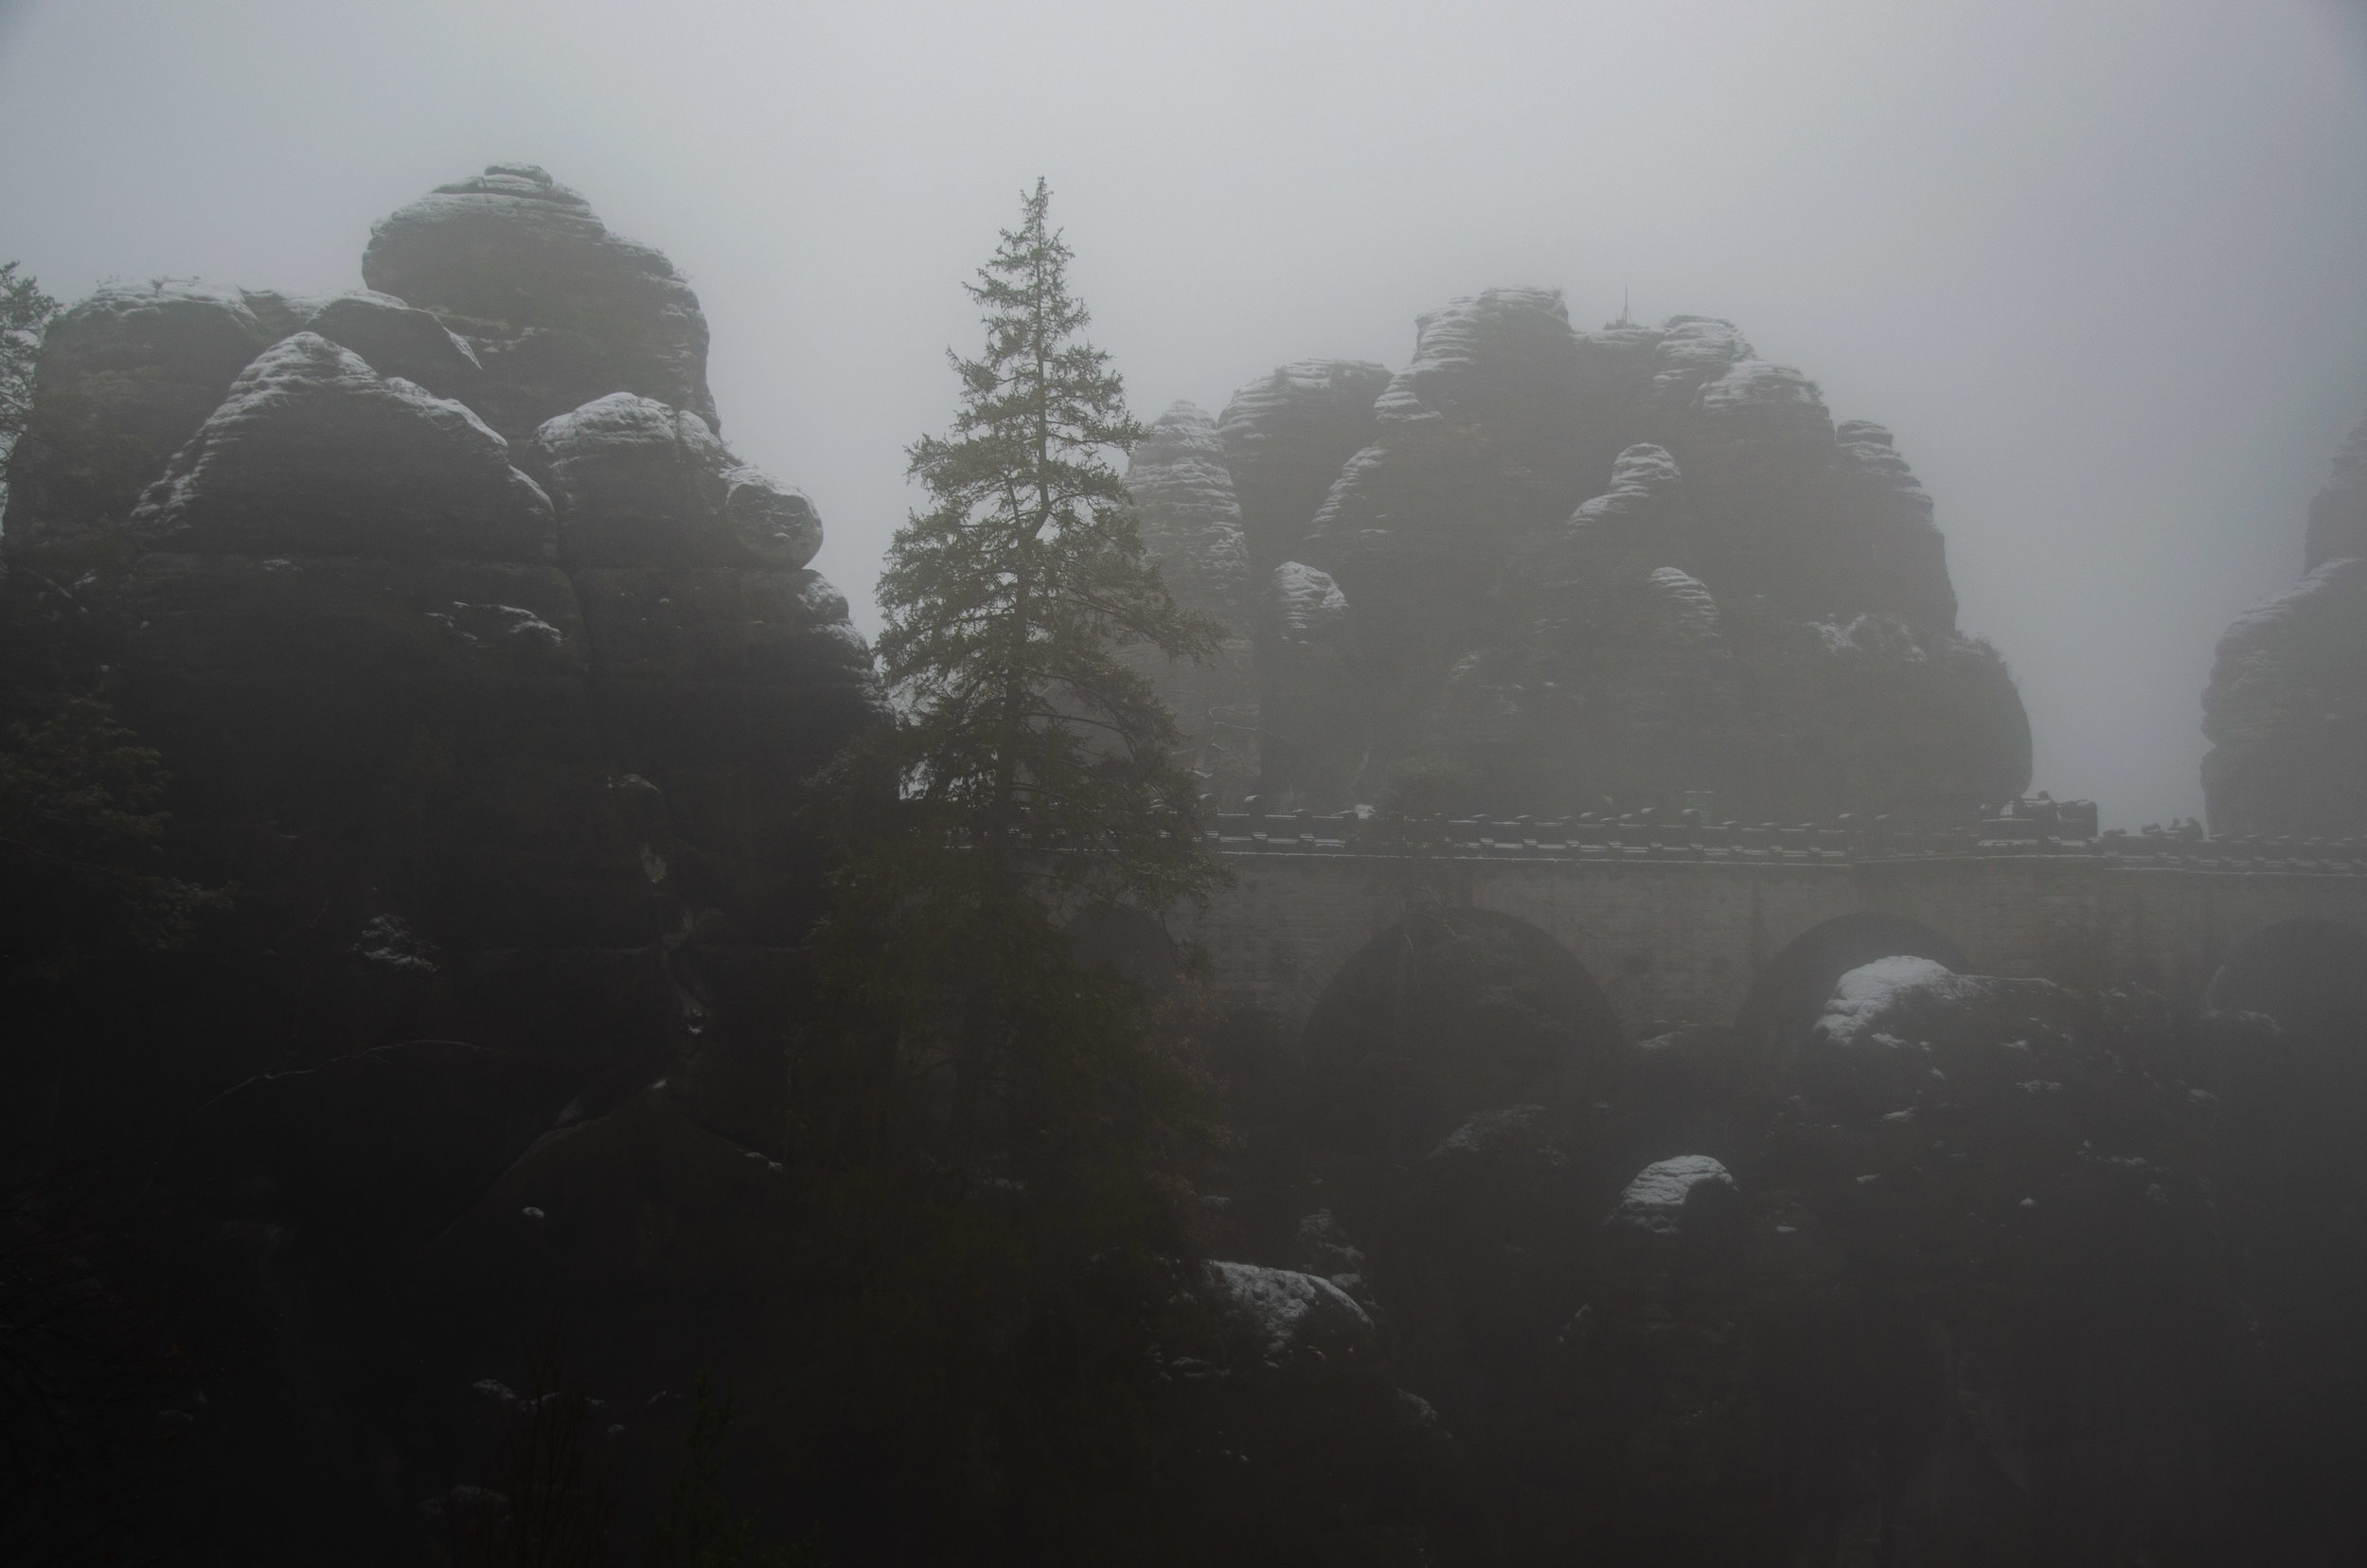 Despite the deep veils of fog, we could just make out the famous Bastei Bridge lurking through the gloom